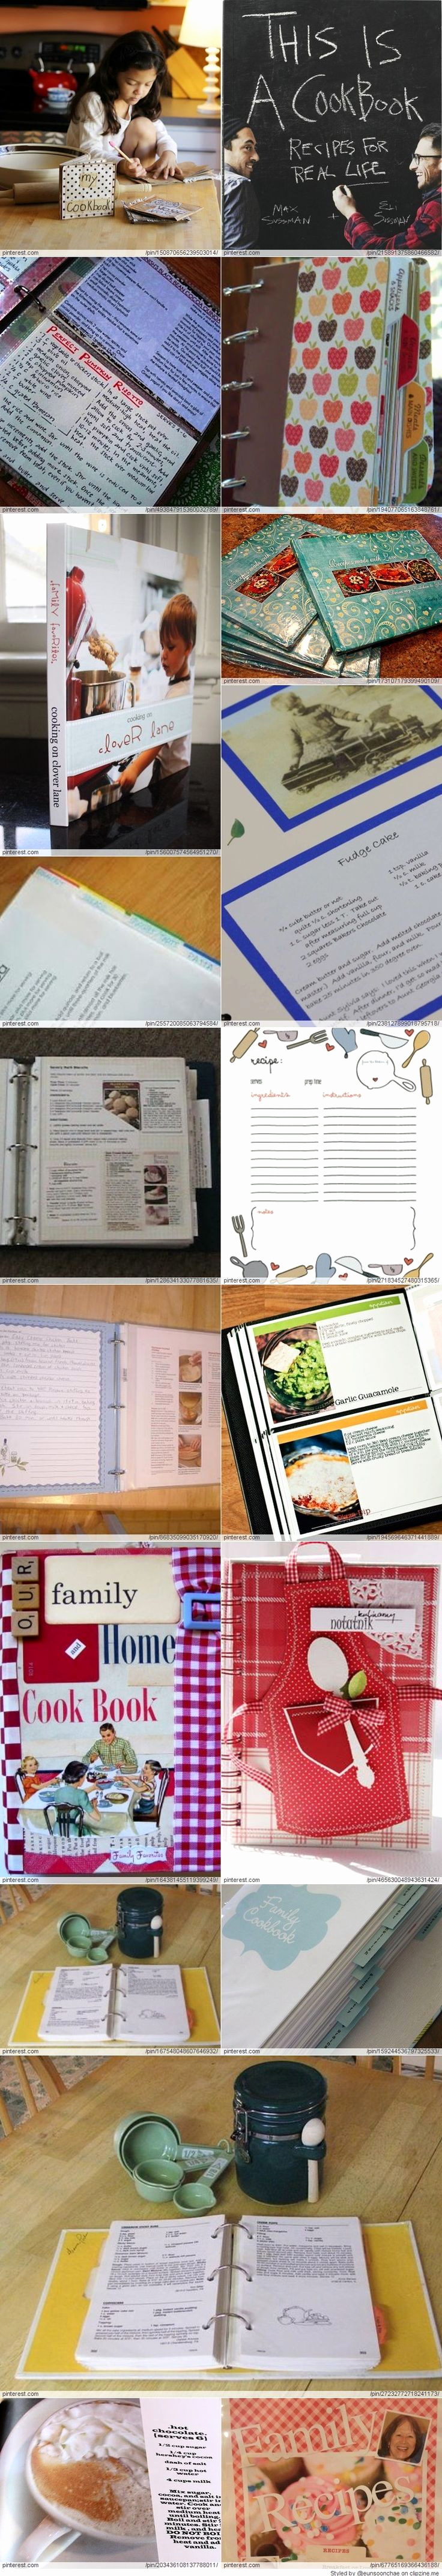 Make Your Own Cookbook Template Luxury 17 Best Ideas About Make Your Own Cookbook On Pinterest